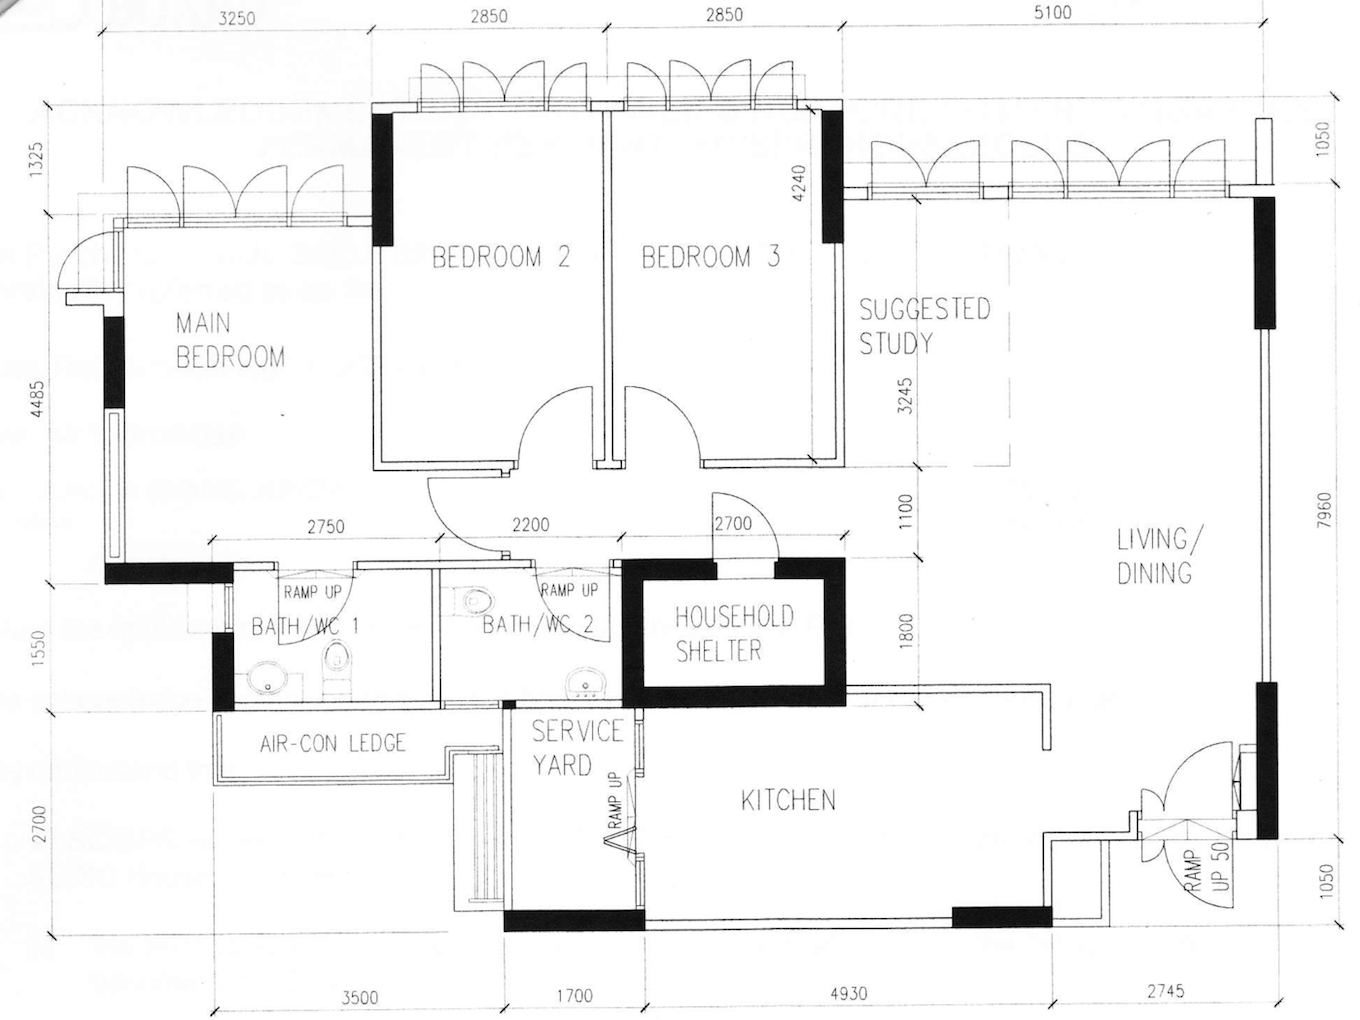 Just2me blackberry development part i Sketchup floorplan